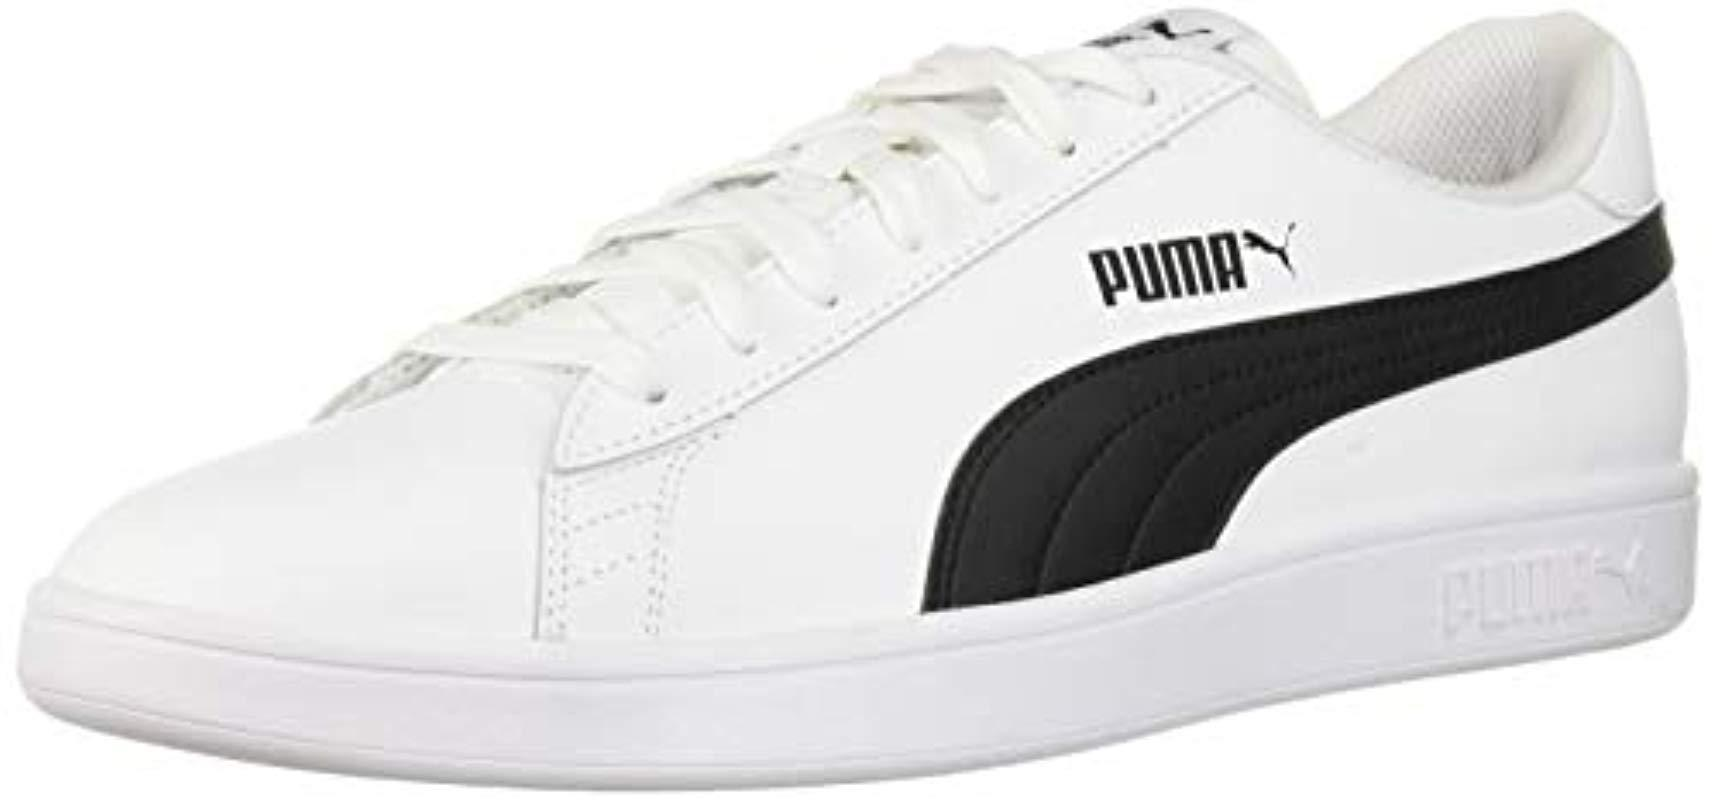 Lyst - Puma Smash V2 Sneaker in White for Men c2672e75c